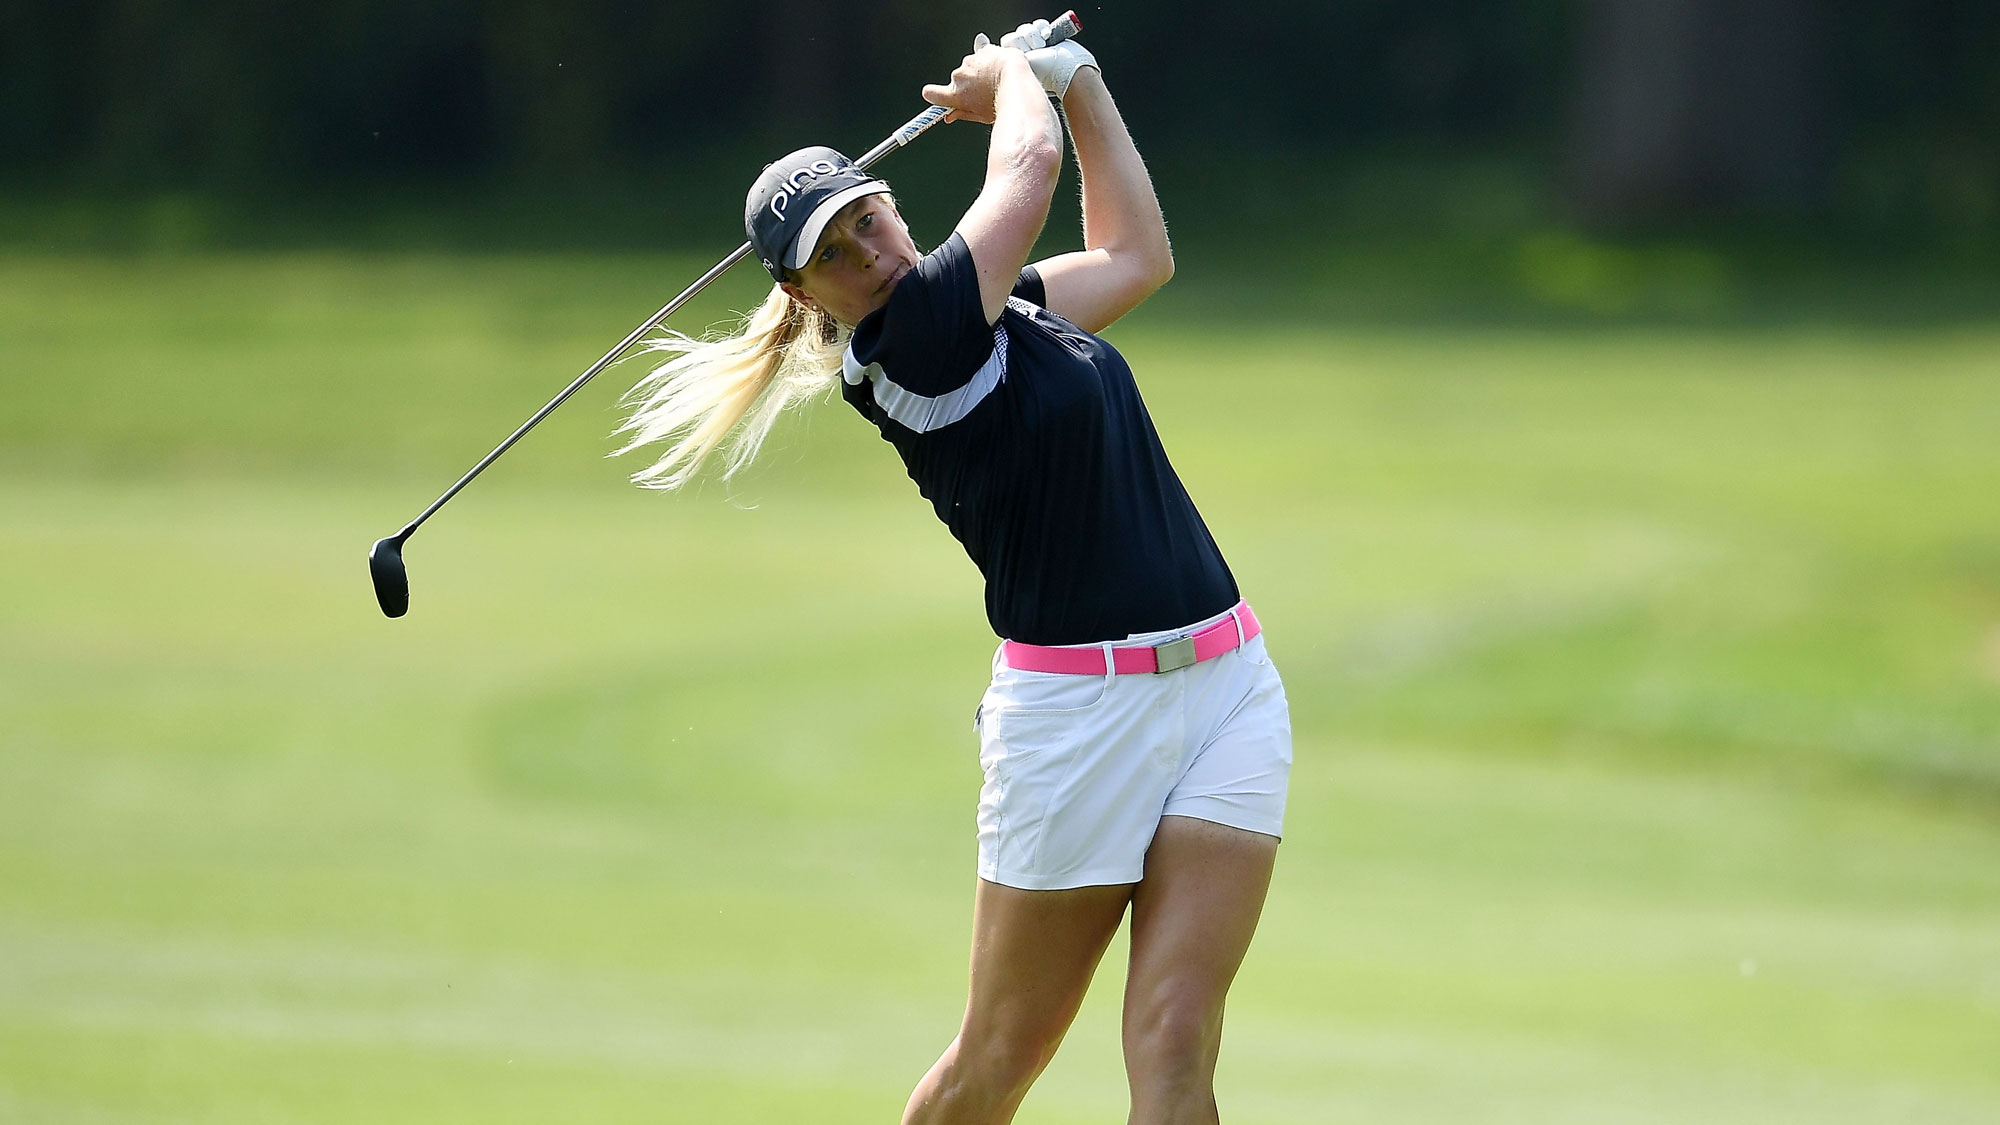 Jacqui Concolino on Sunday at the Meijer LPGA Classic